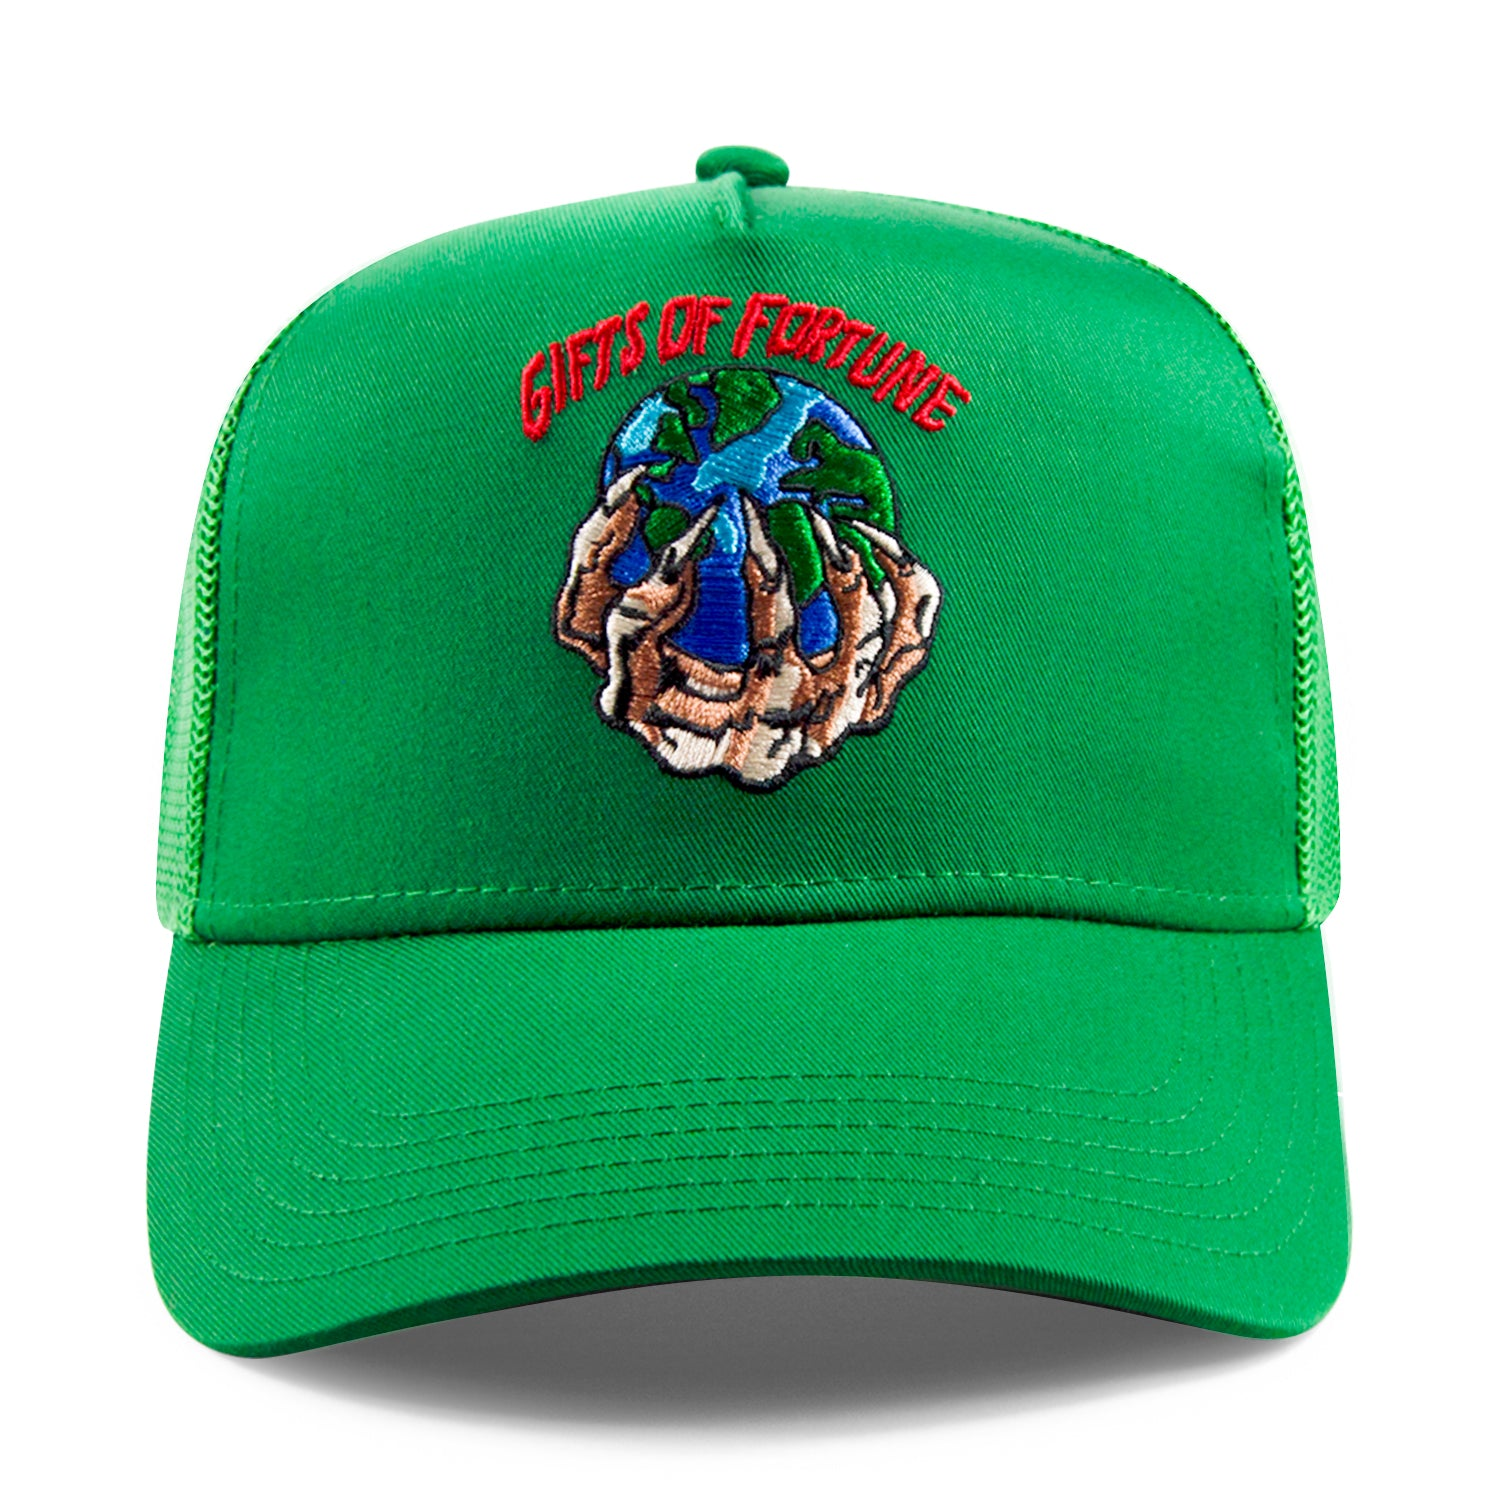 Green The World is Yours Trucker